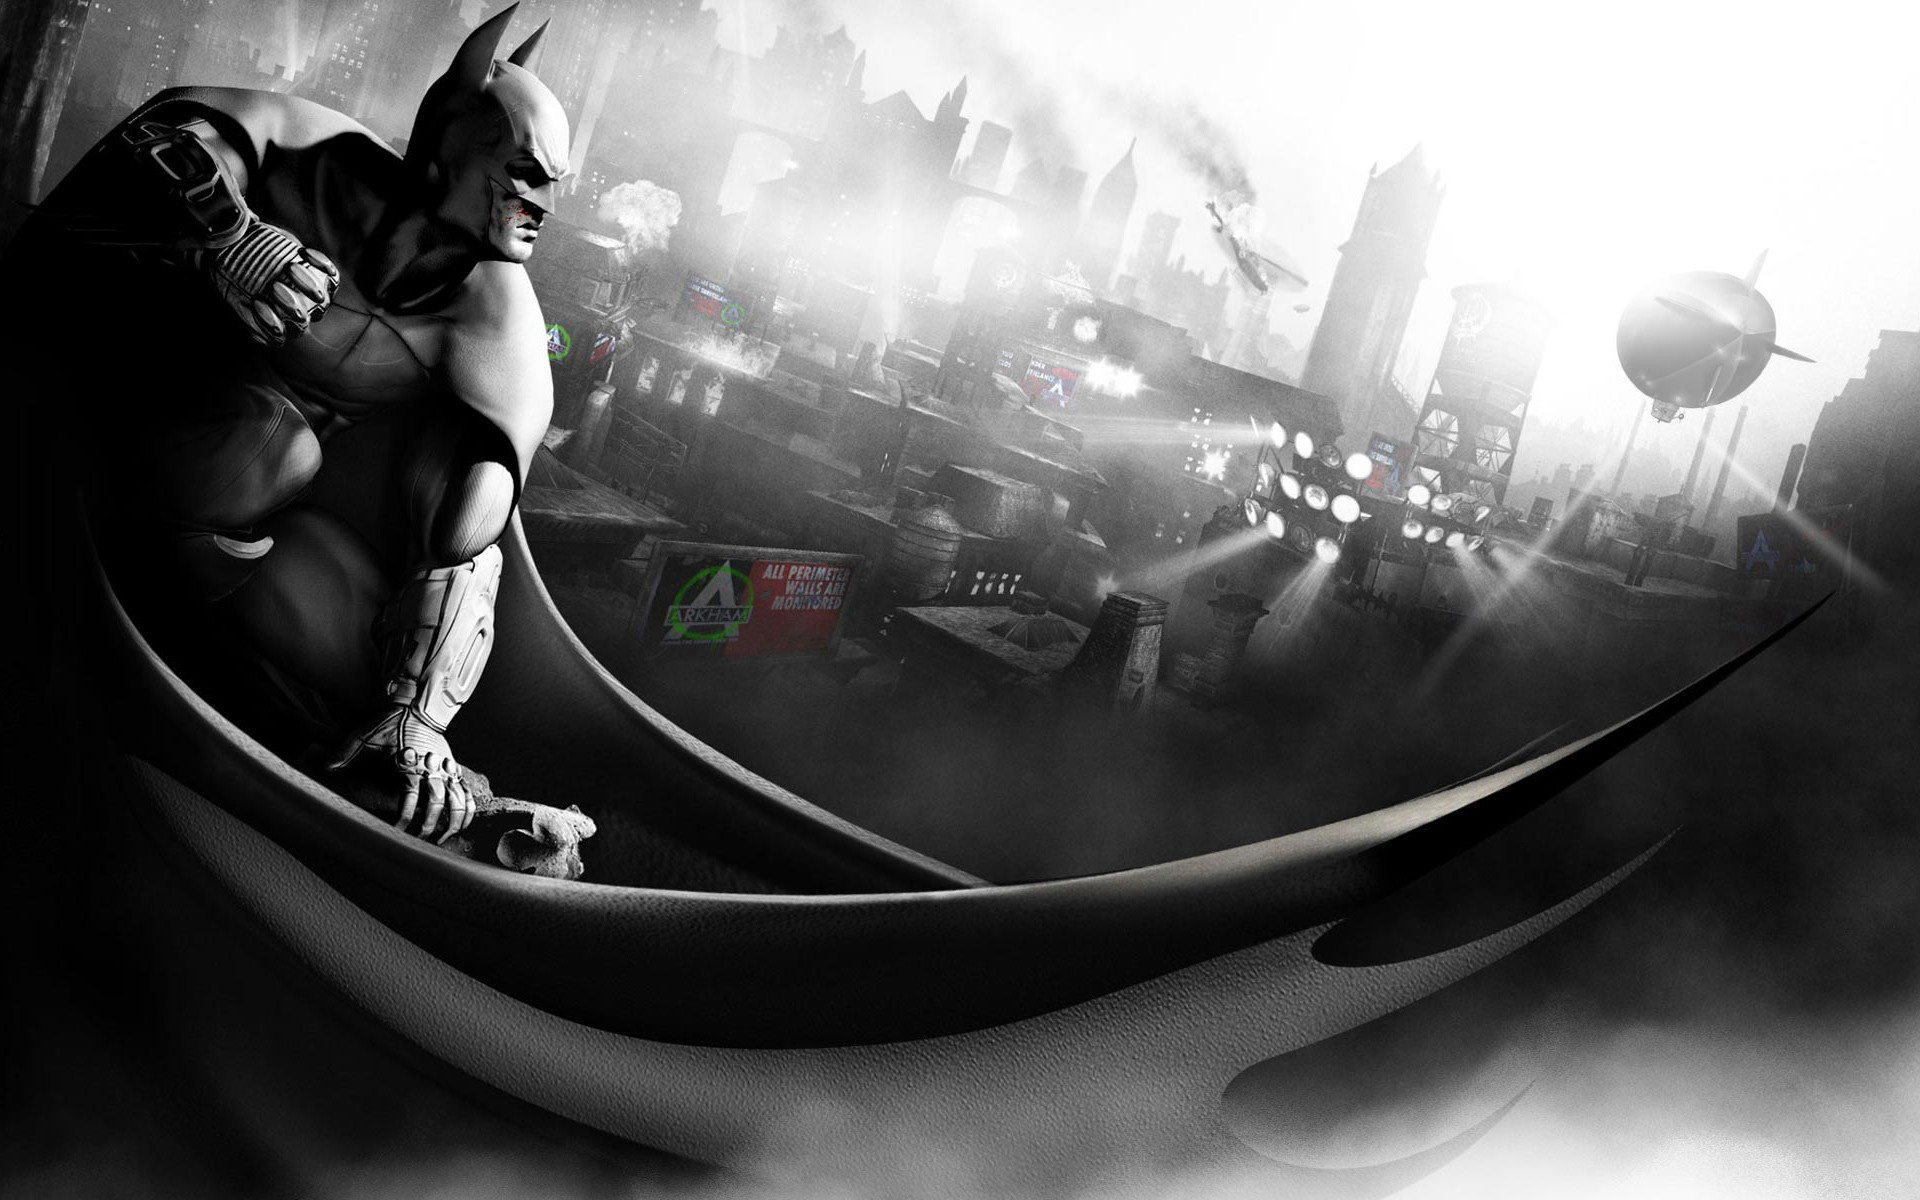 Cute Monster Wallpaper For Android 2011 Batman Arkham City Wallpapers Hd Wallpapers Id 10112